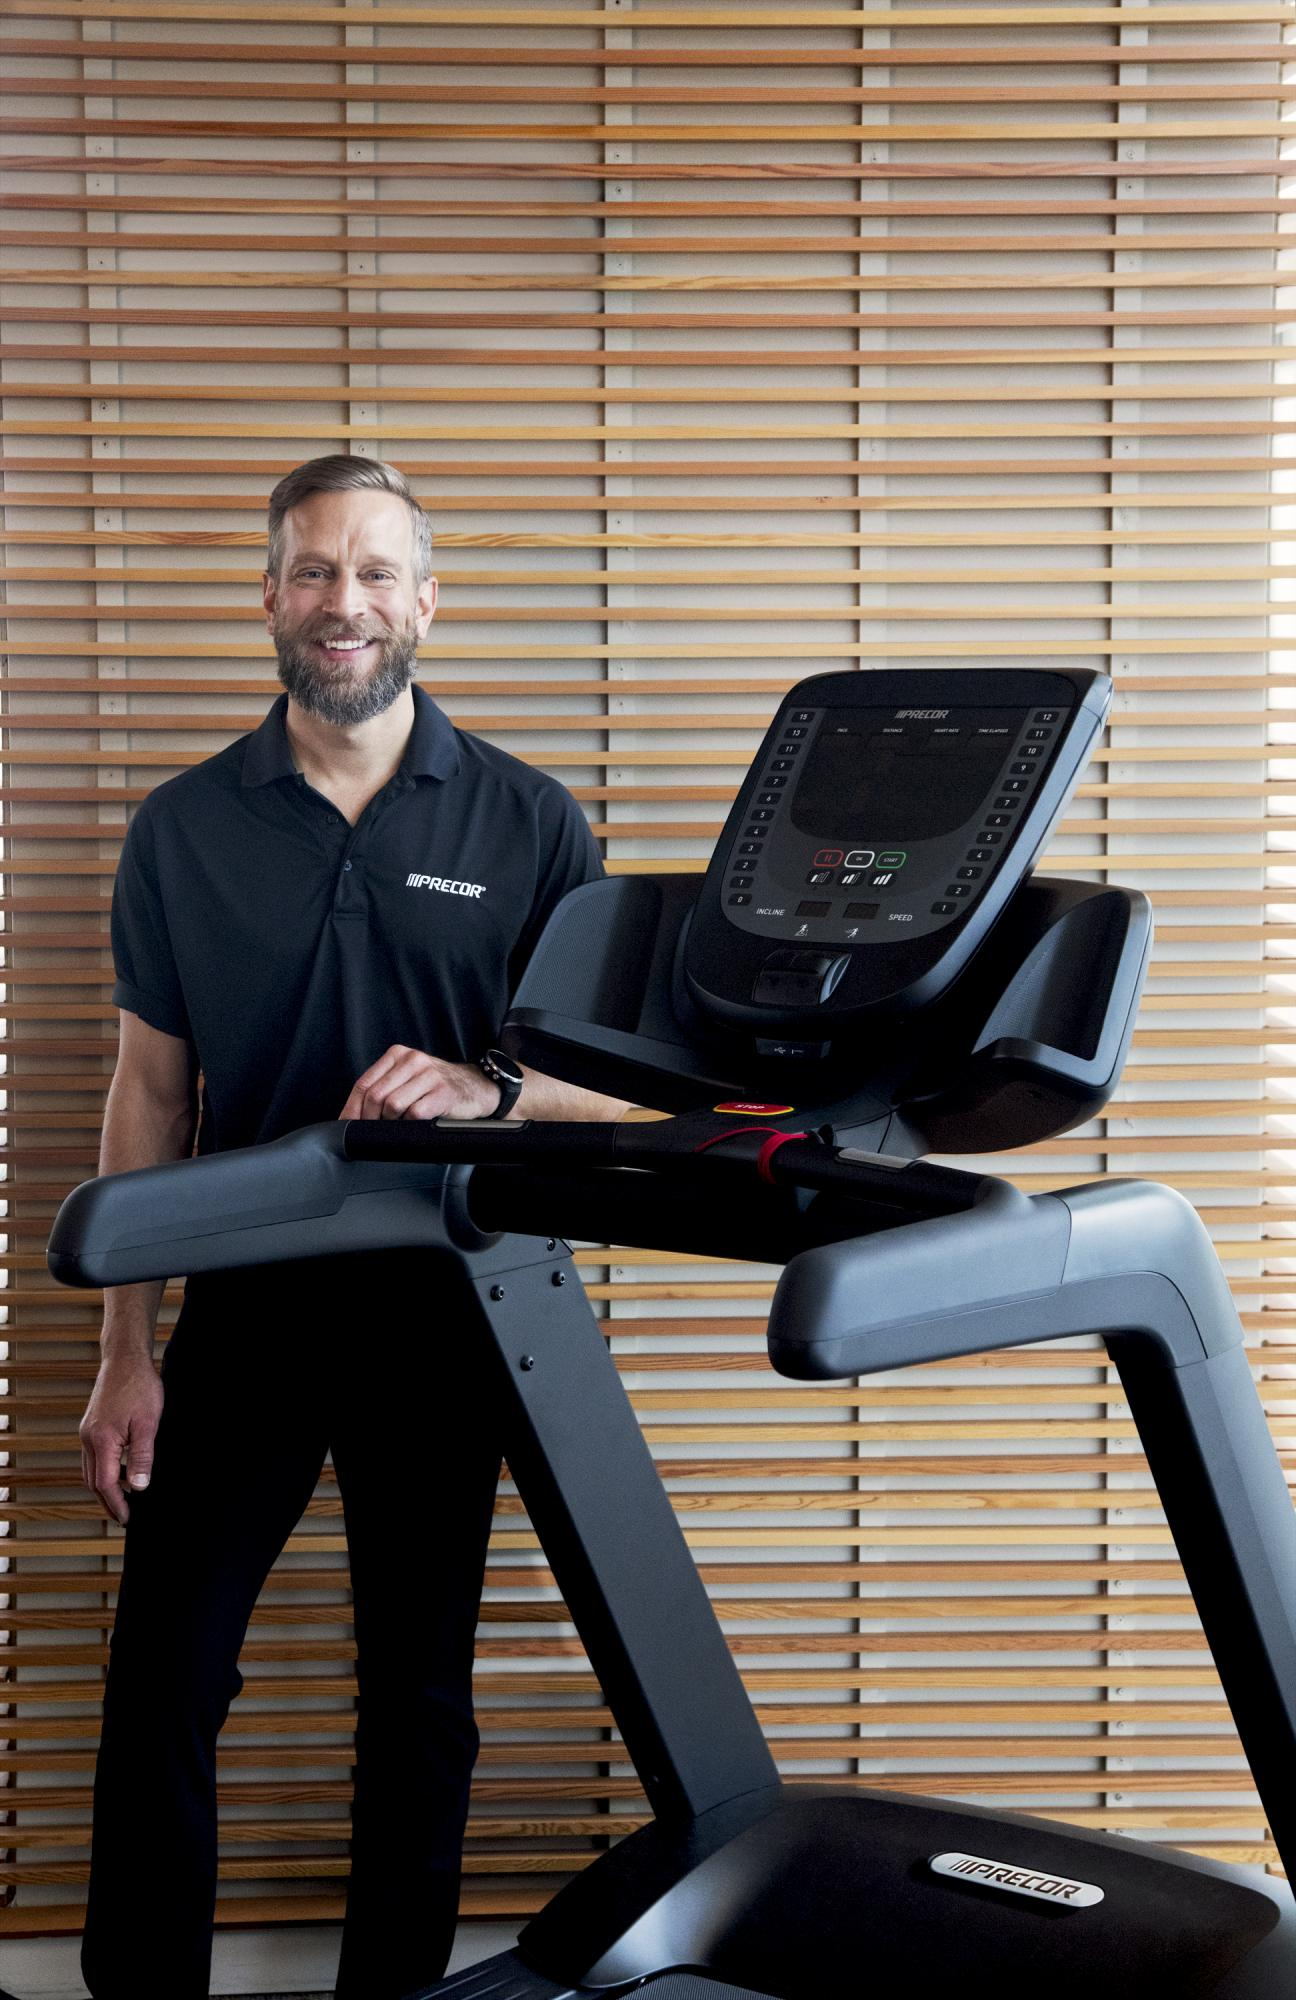 Male Precor customer service representative in front of a Precor TRM 731i interval treadmill with a P31i consoleM 885 treadmills with P80 consoles